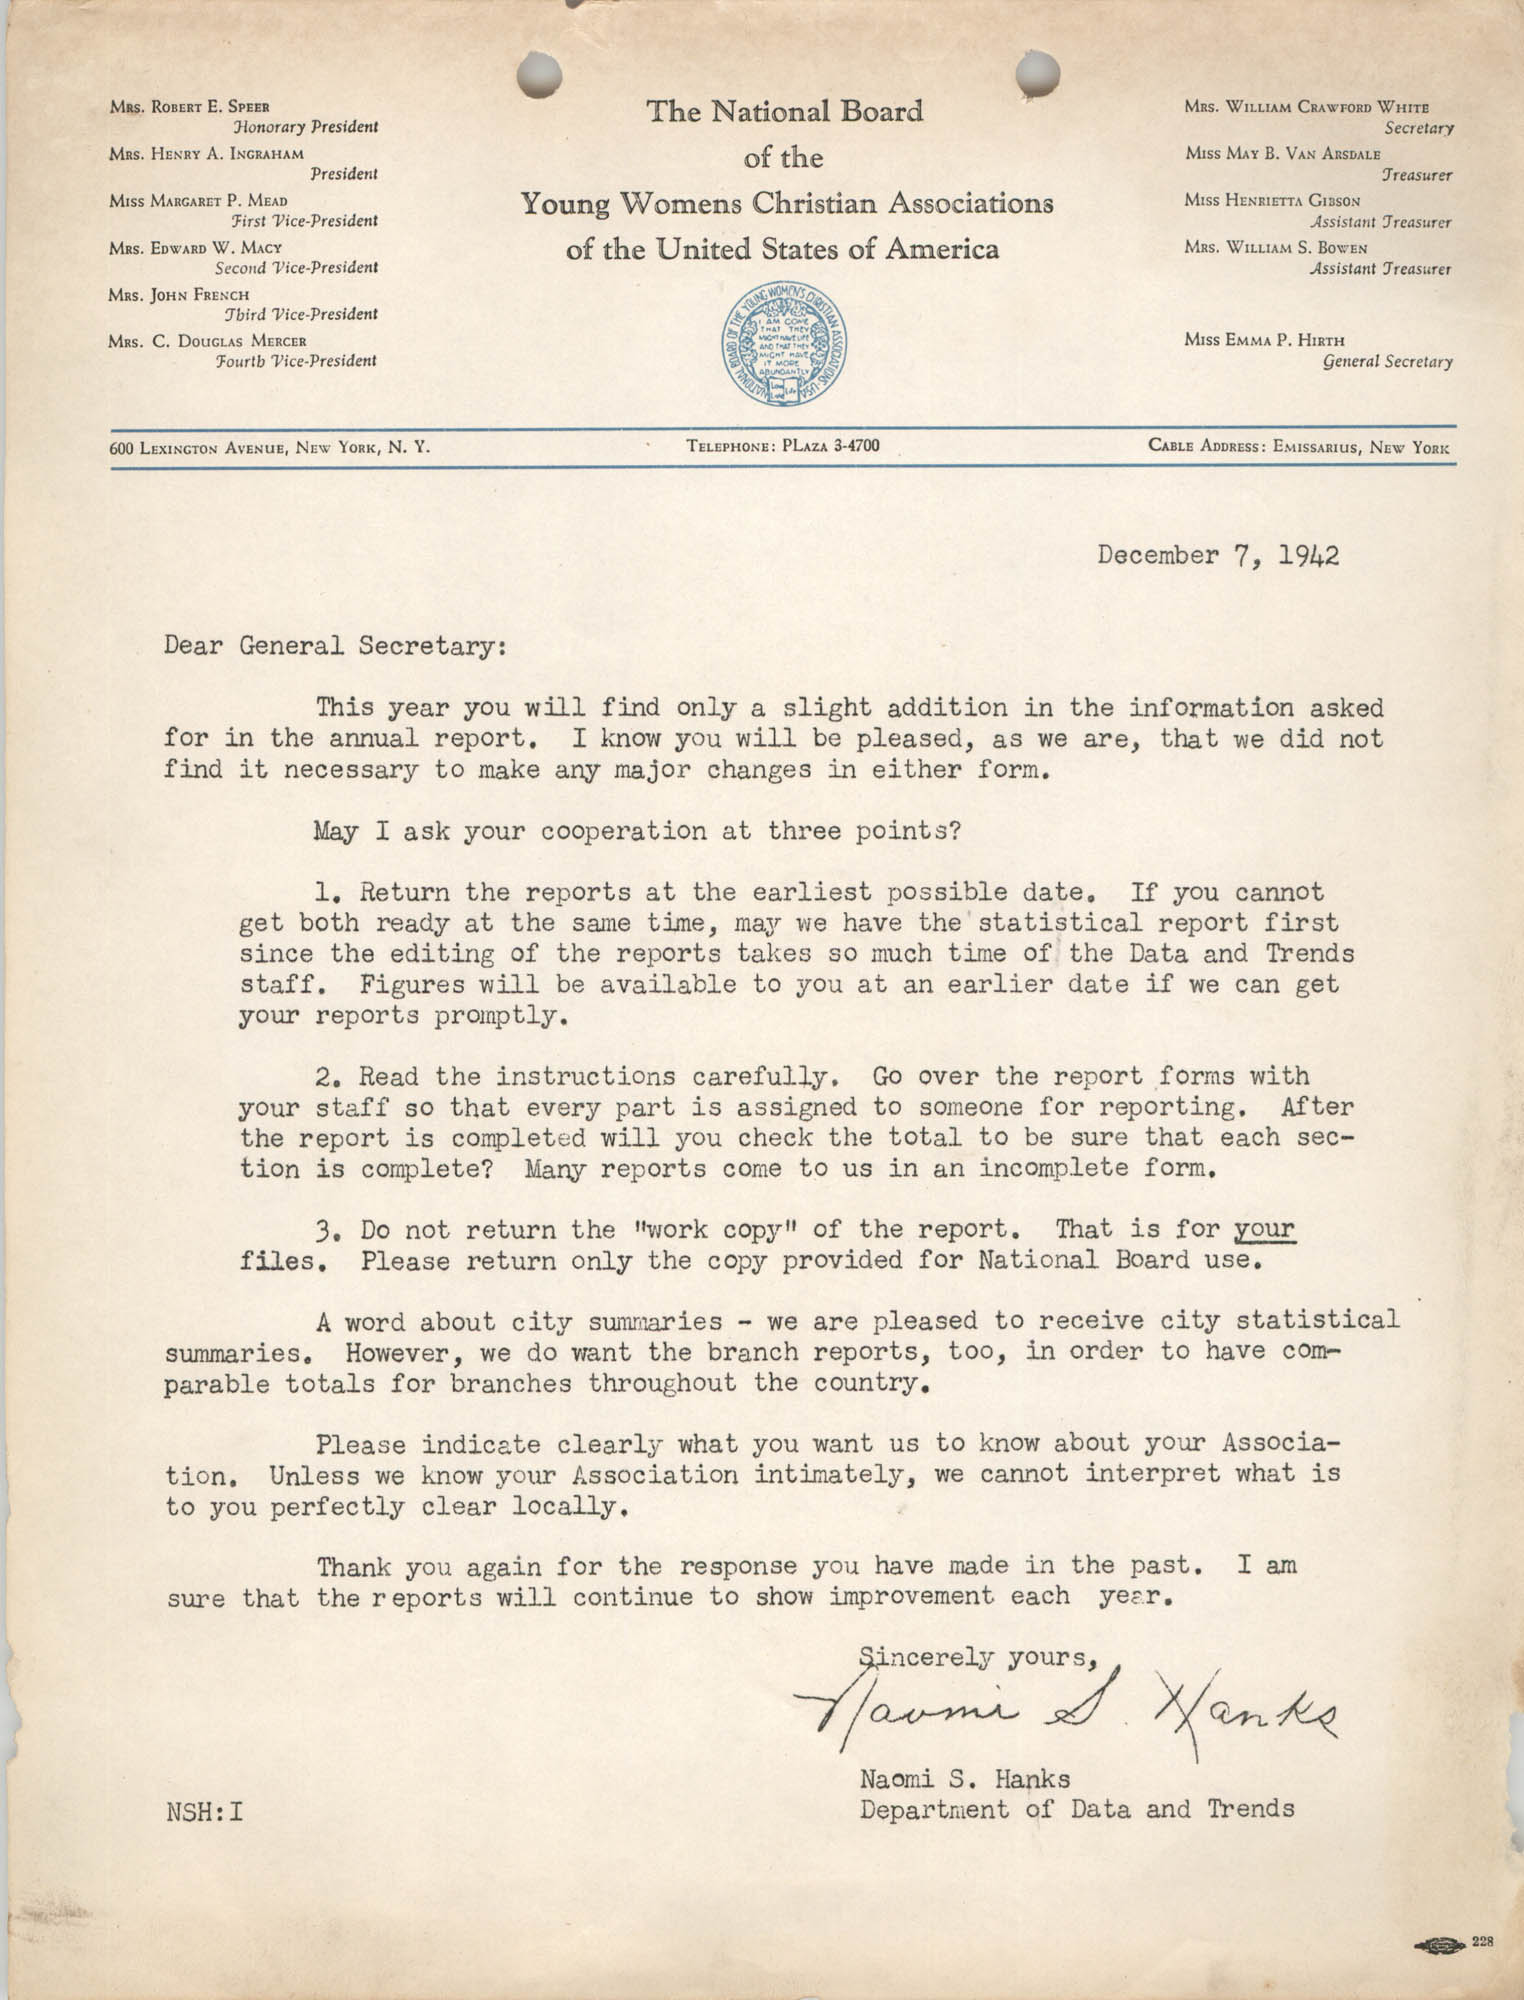 Letter from Naomi S. Hanks to General Secretary of the National Board of Y.W.C.A., December 7, 1942